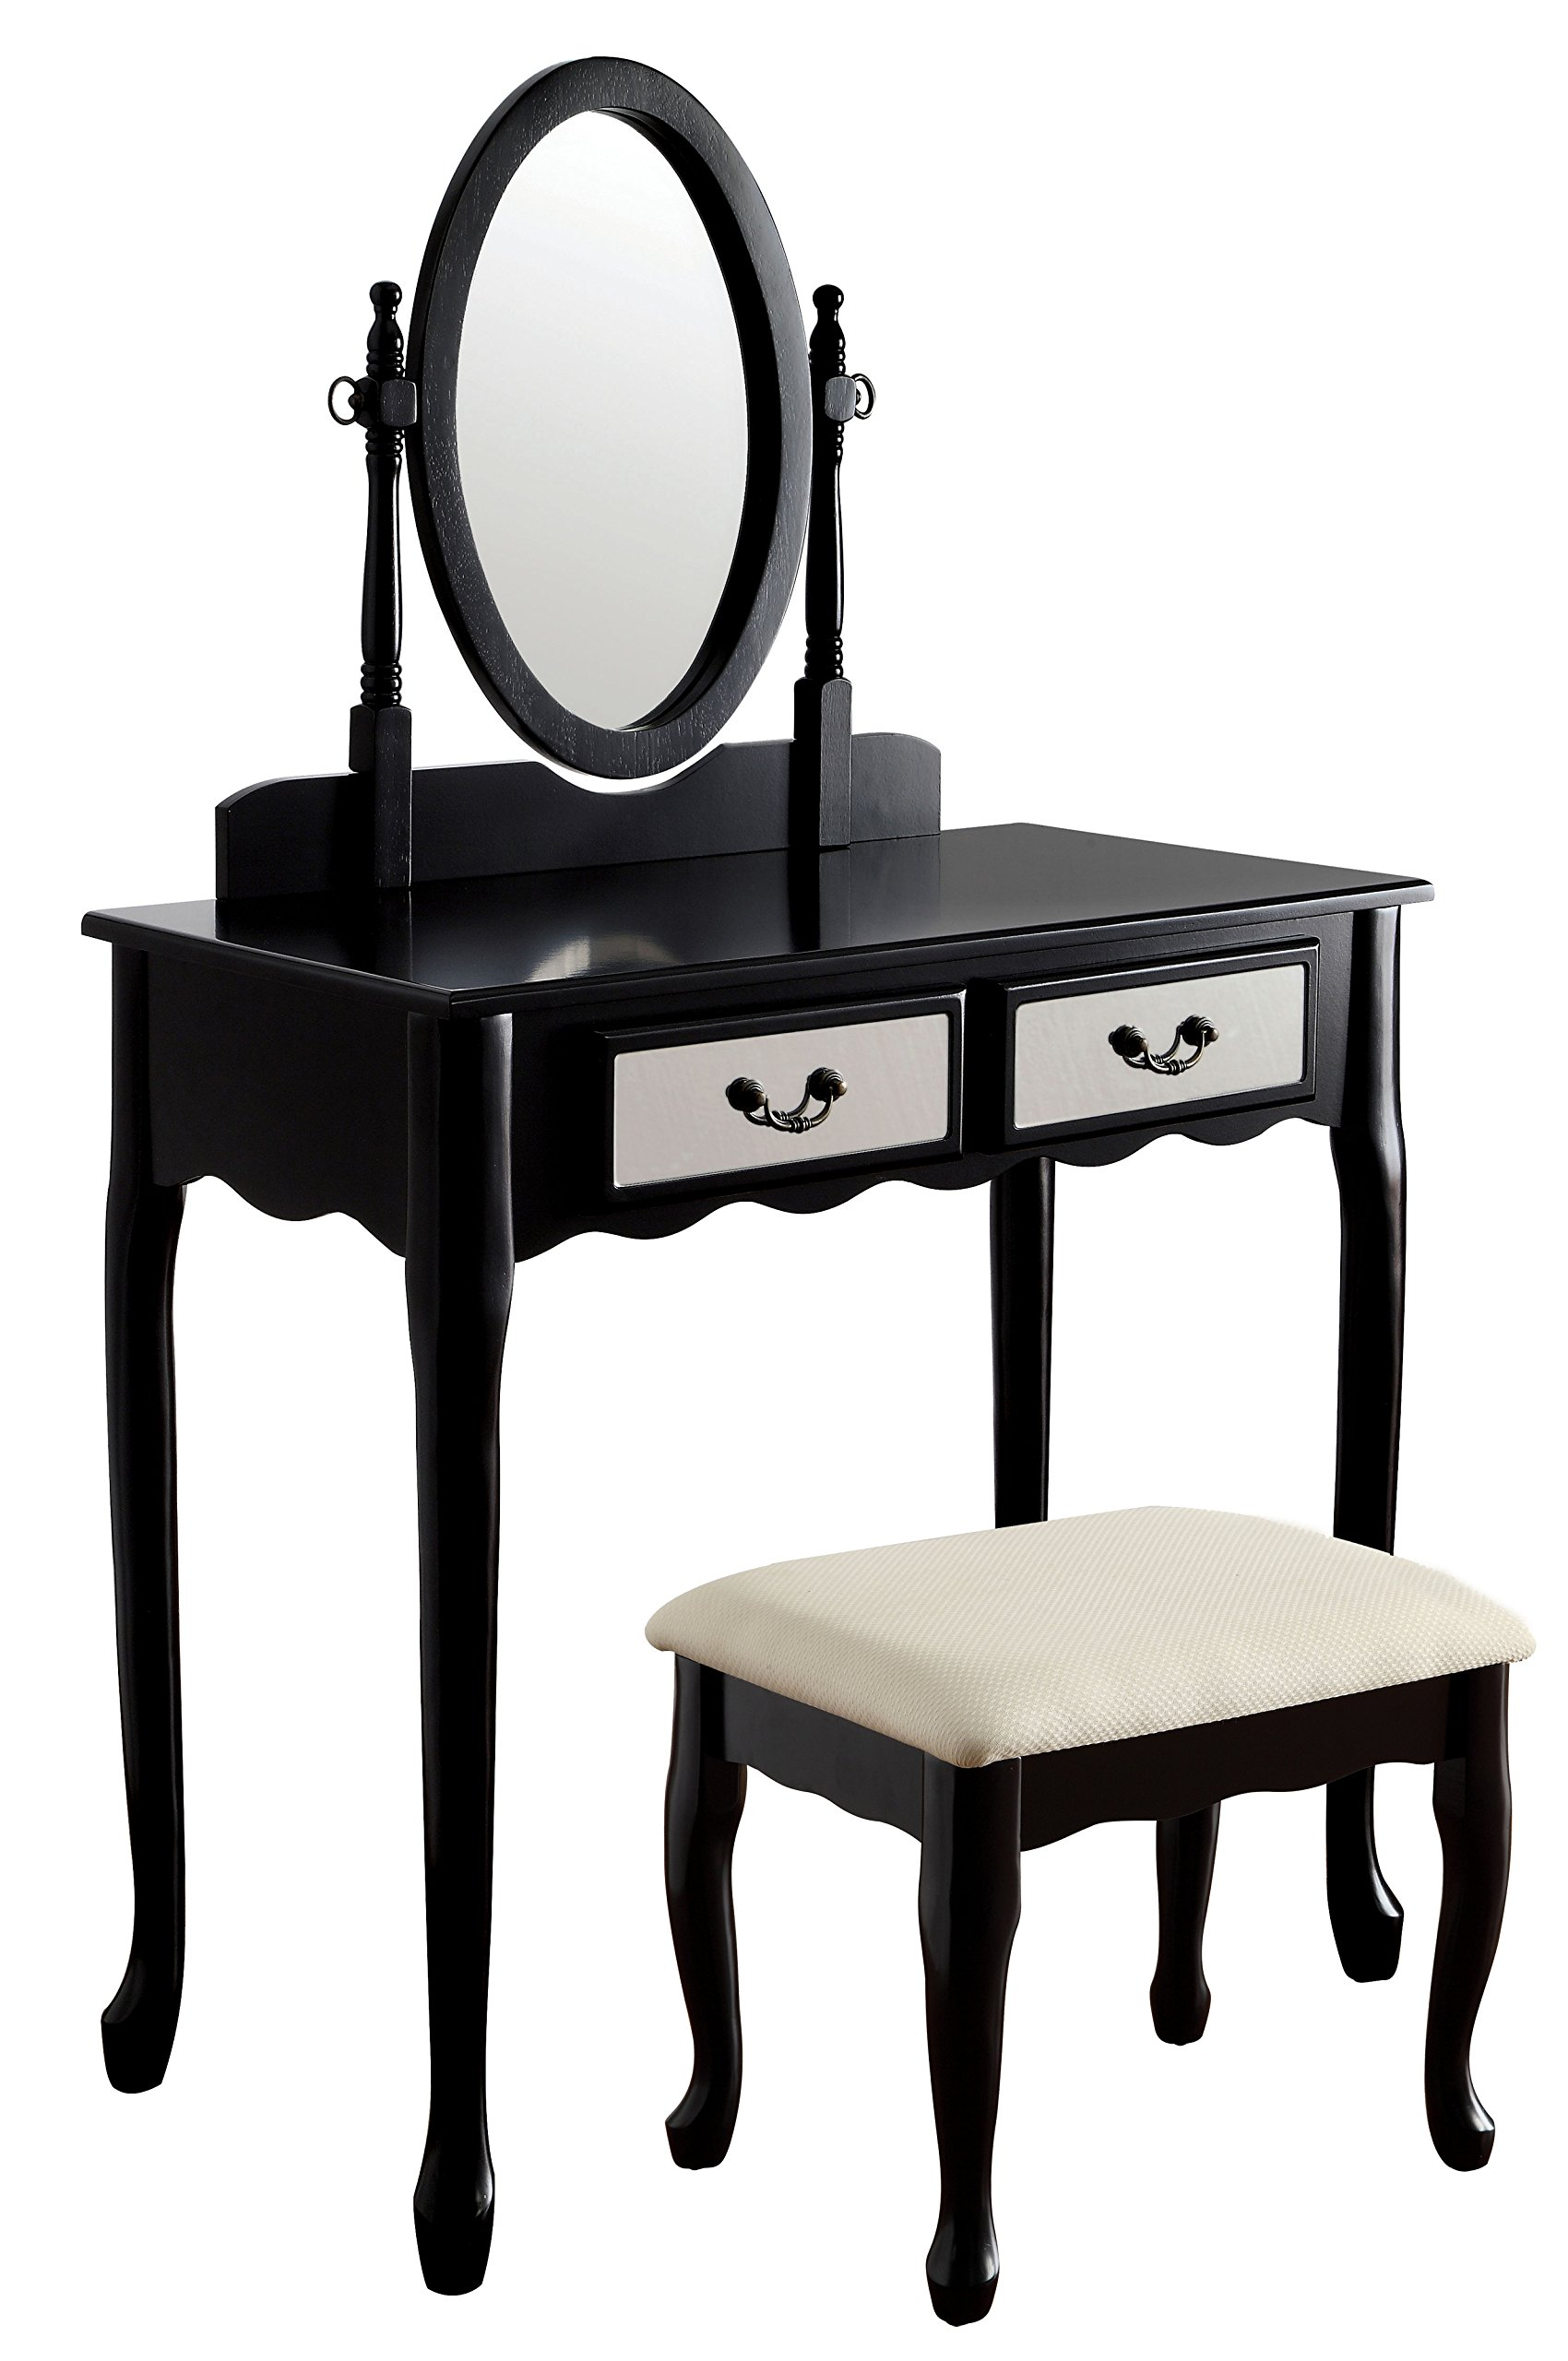 HOMES: Inside + Out Idf-DK6431BK Ensta Vanity Table with Stool, Black